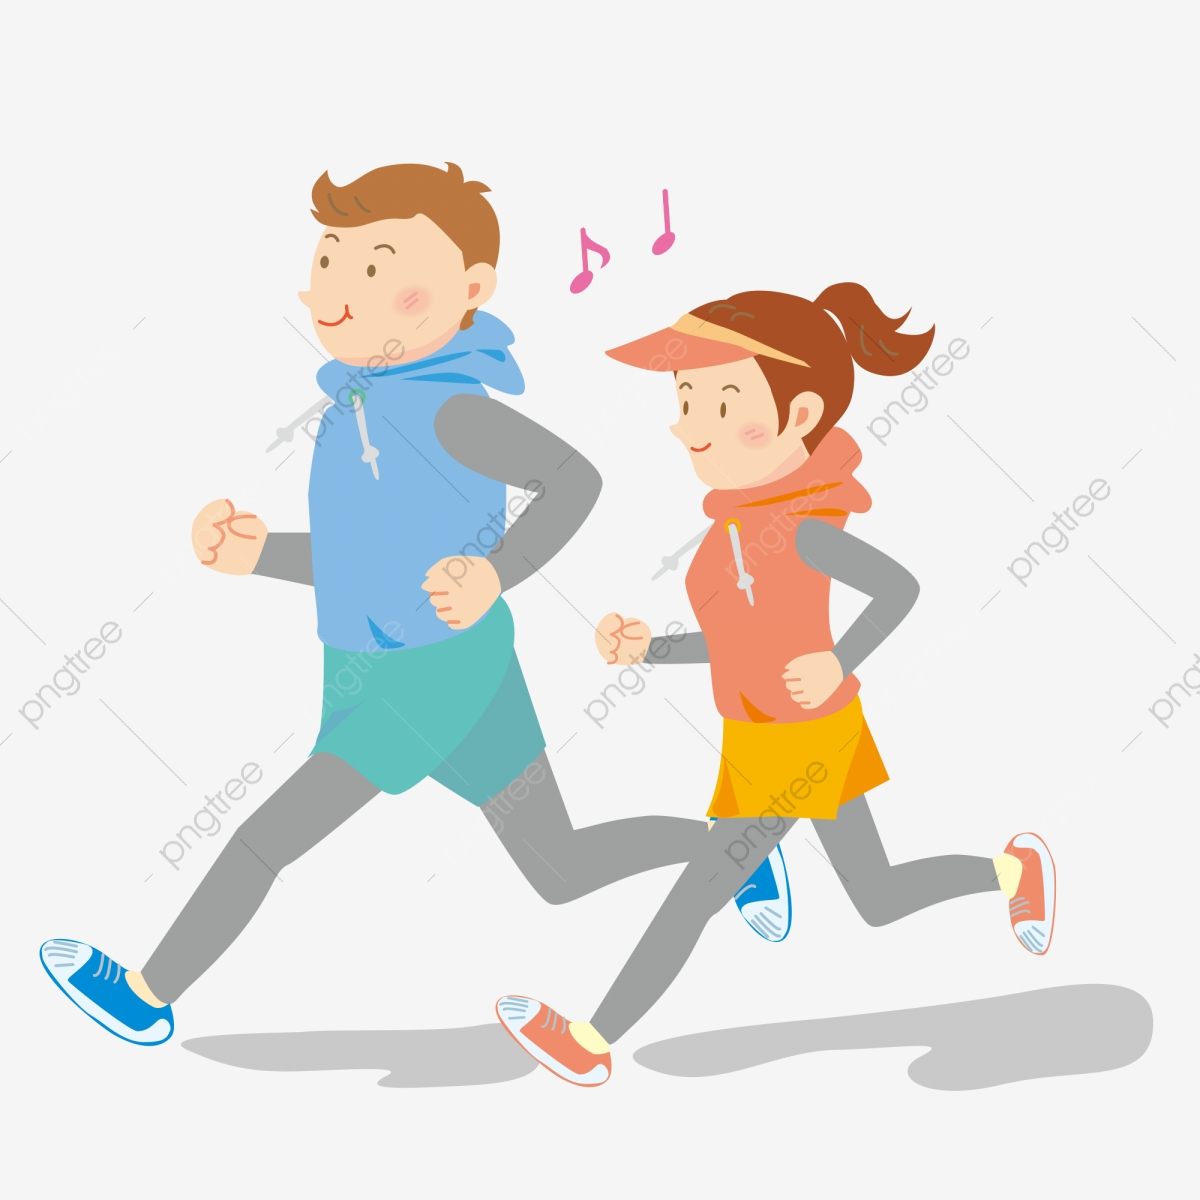 Motion Cartoon Hand Drawn Morning Run Run Healthy Running Simple Aerobic Exercise Fitness Png And Vector With Transparent Background For Free Download